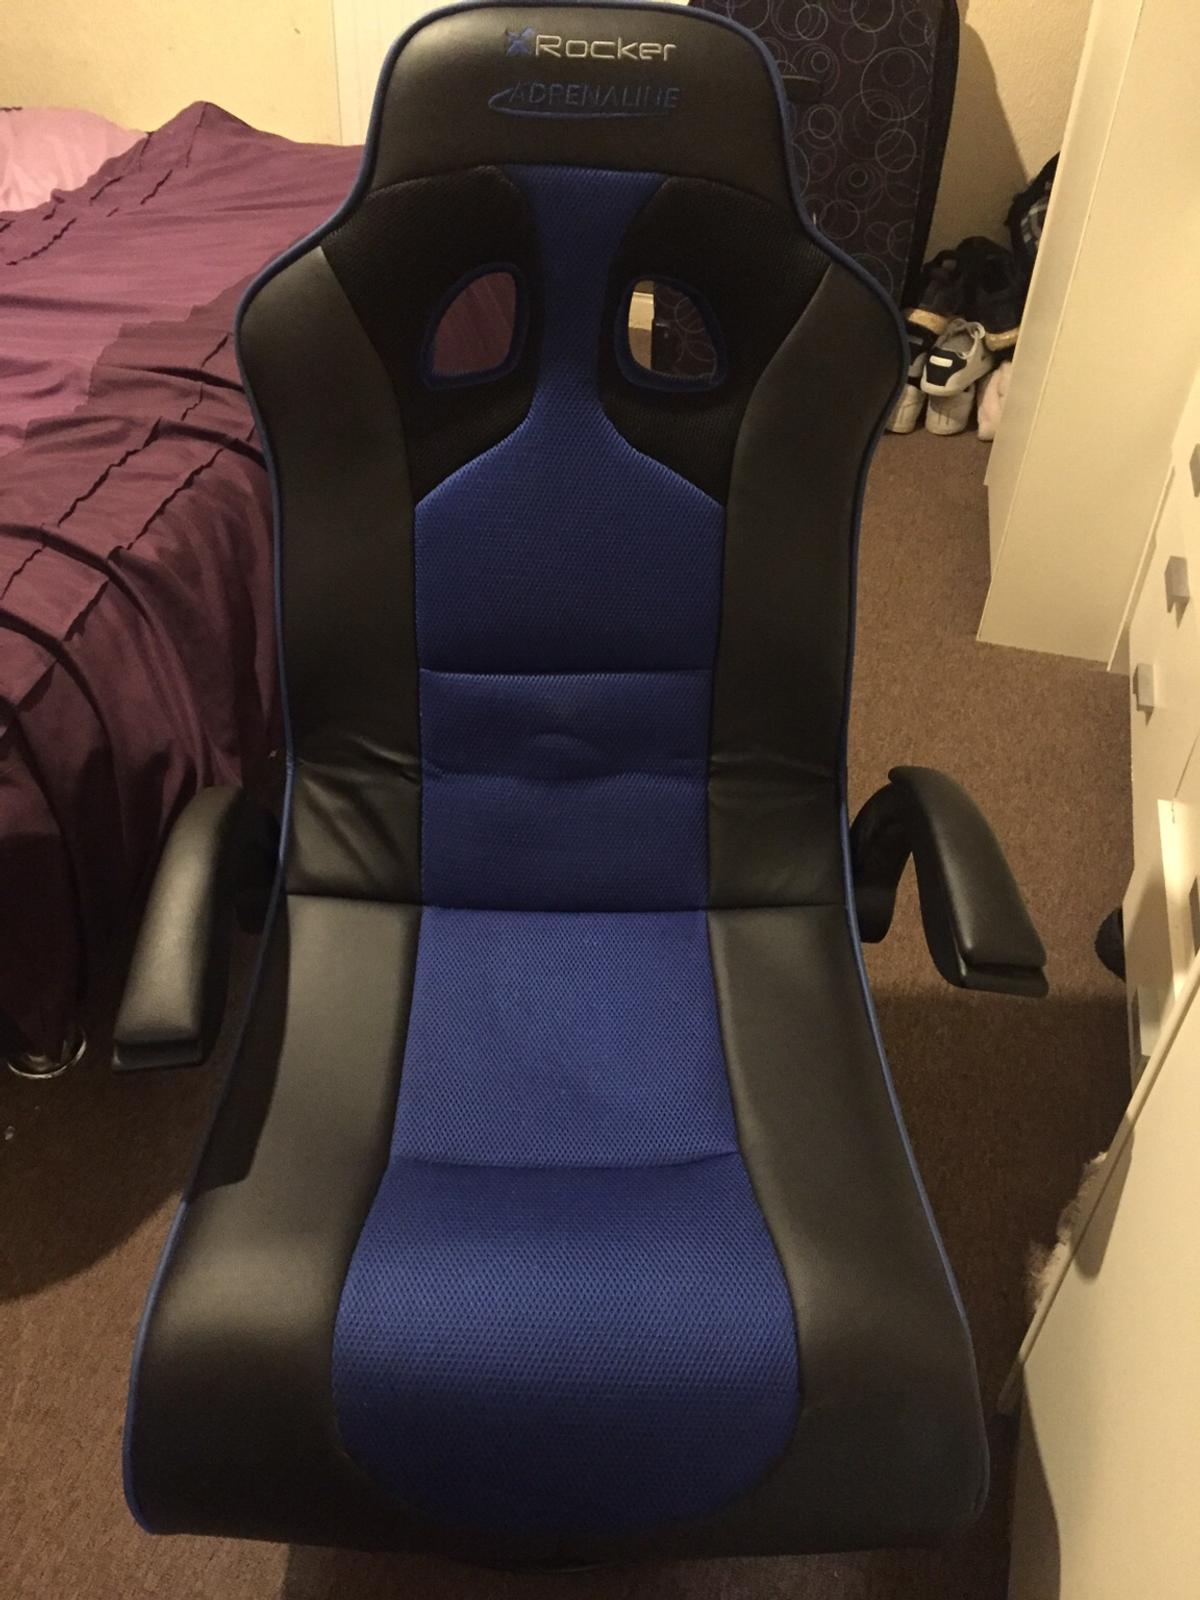 Marvelous X Rocker Adrenaline Gaming Chair Ps4 Xboxone In London Pdpeps Interior Chair Design Pdpepsorg